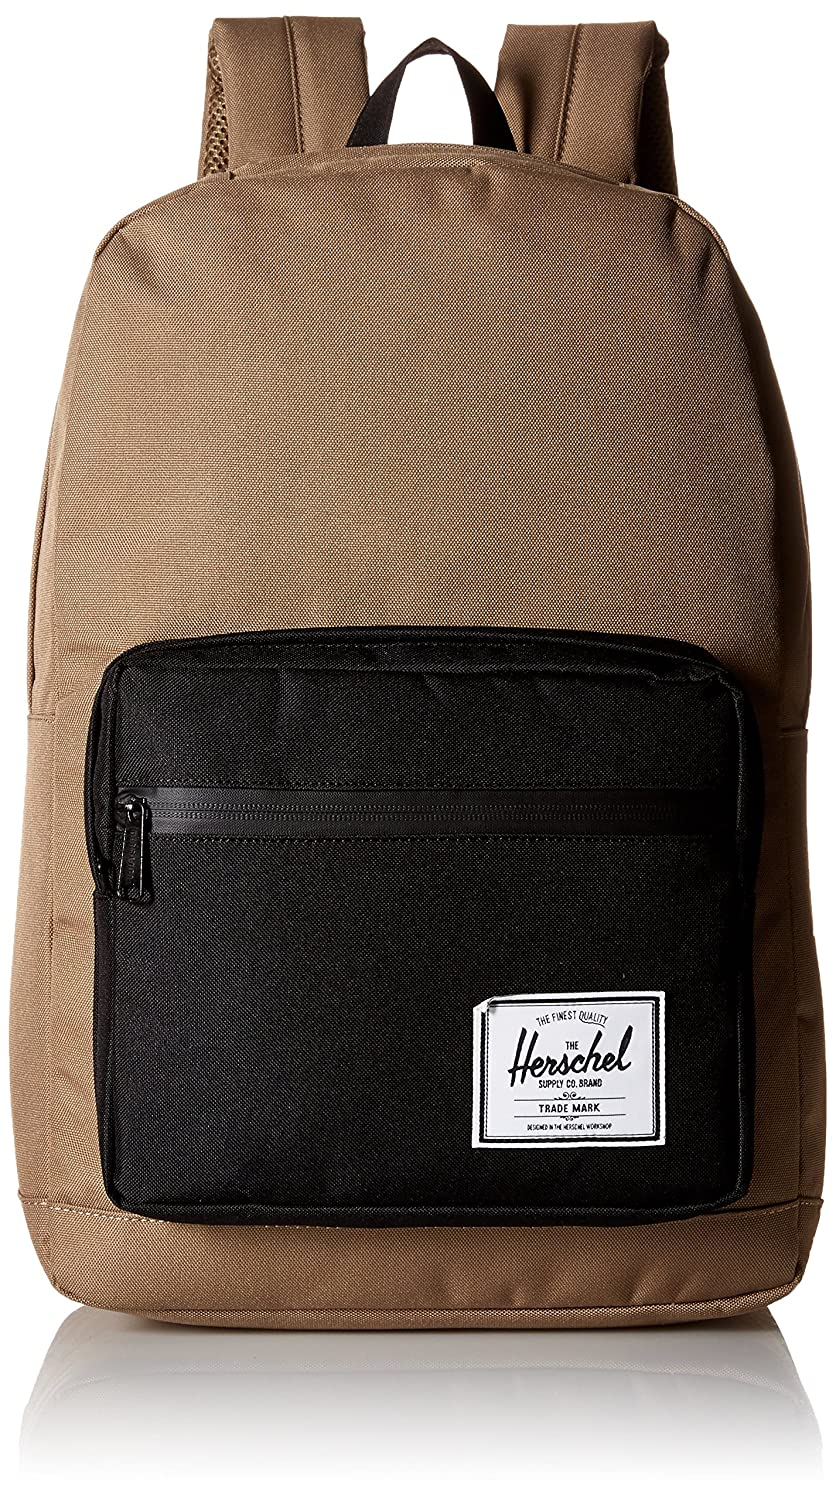 Herschel Classic Pop Quiz 15 Laptop Backpack multicolour: Amazon.es: Equipaje